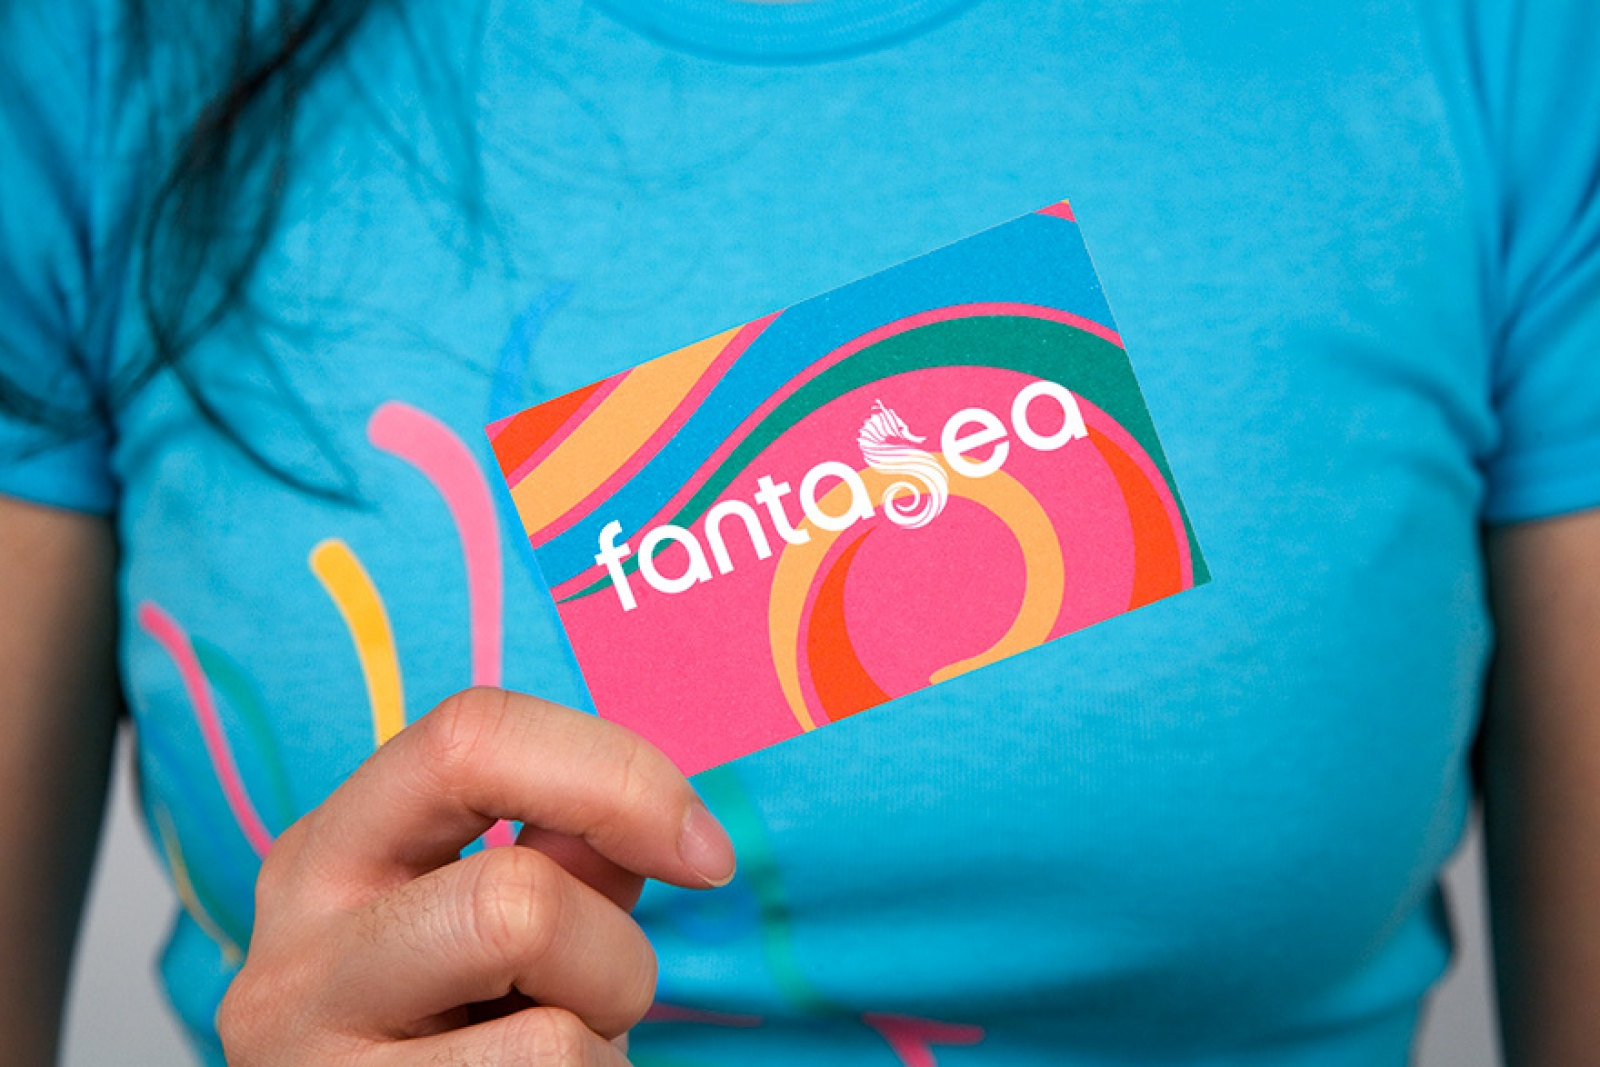 Fantasea Collateral and Merchandise